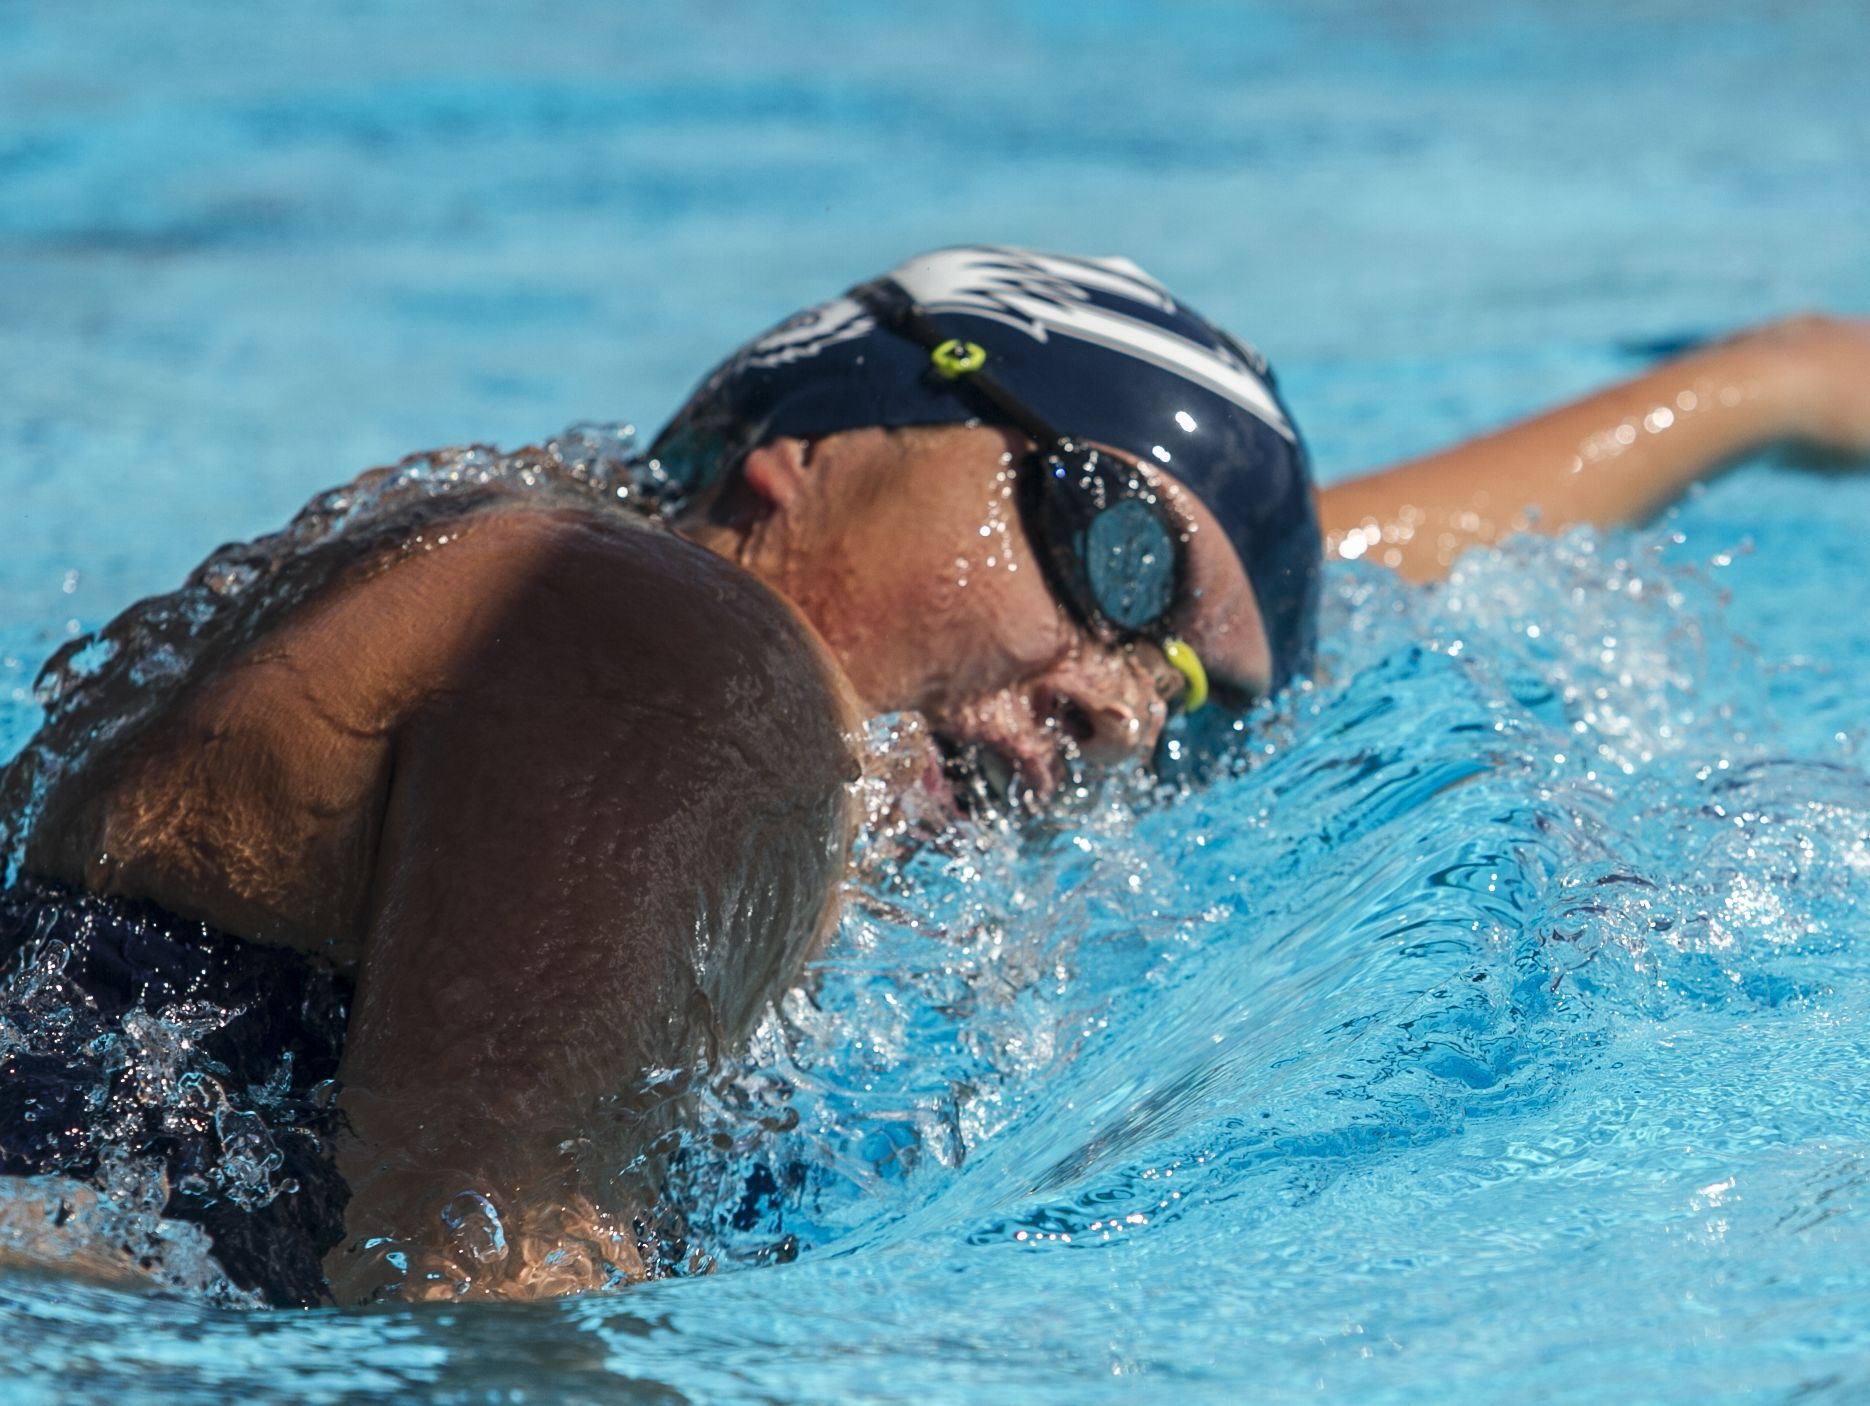 Jenny Vargas, a swimmer from Estero High School, won the second heat of the girls 500m freestyle competition Monday afternoon. The meet was part of the Lee County Athletic Conference swimming championships held at FGCU.